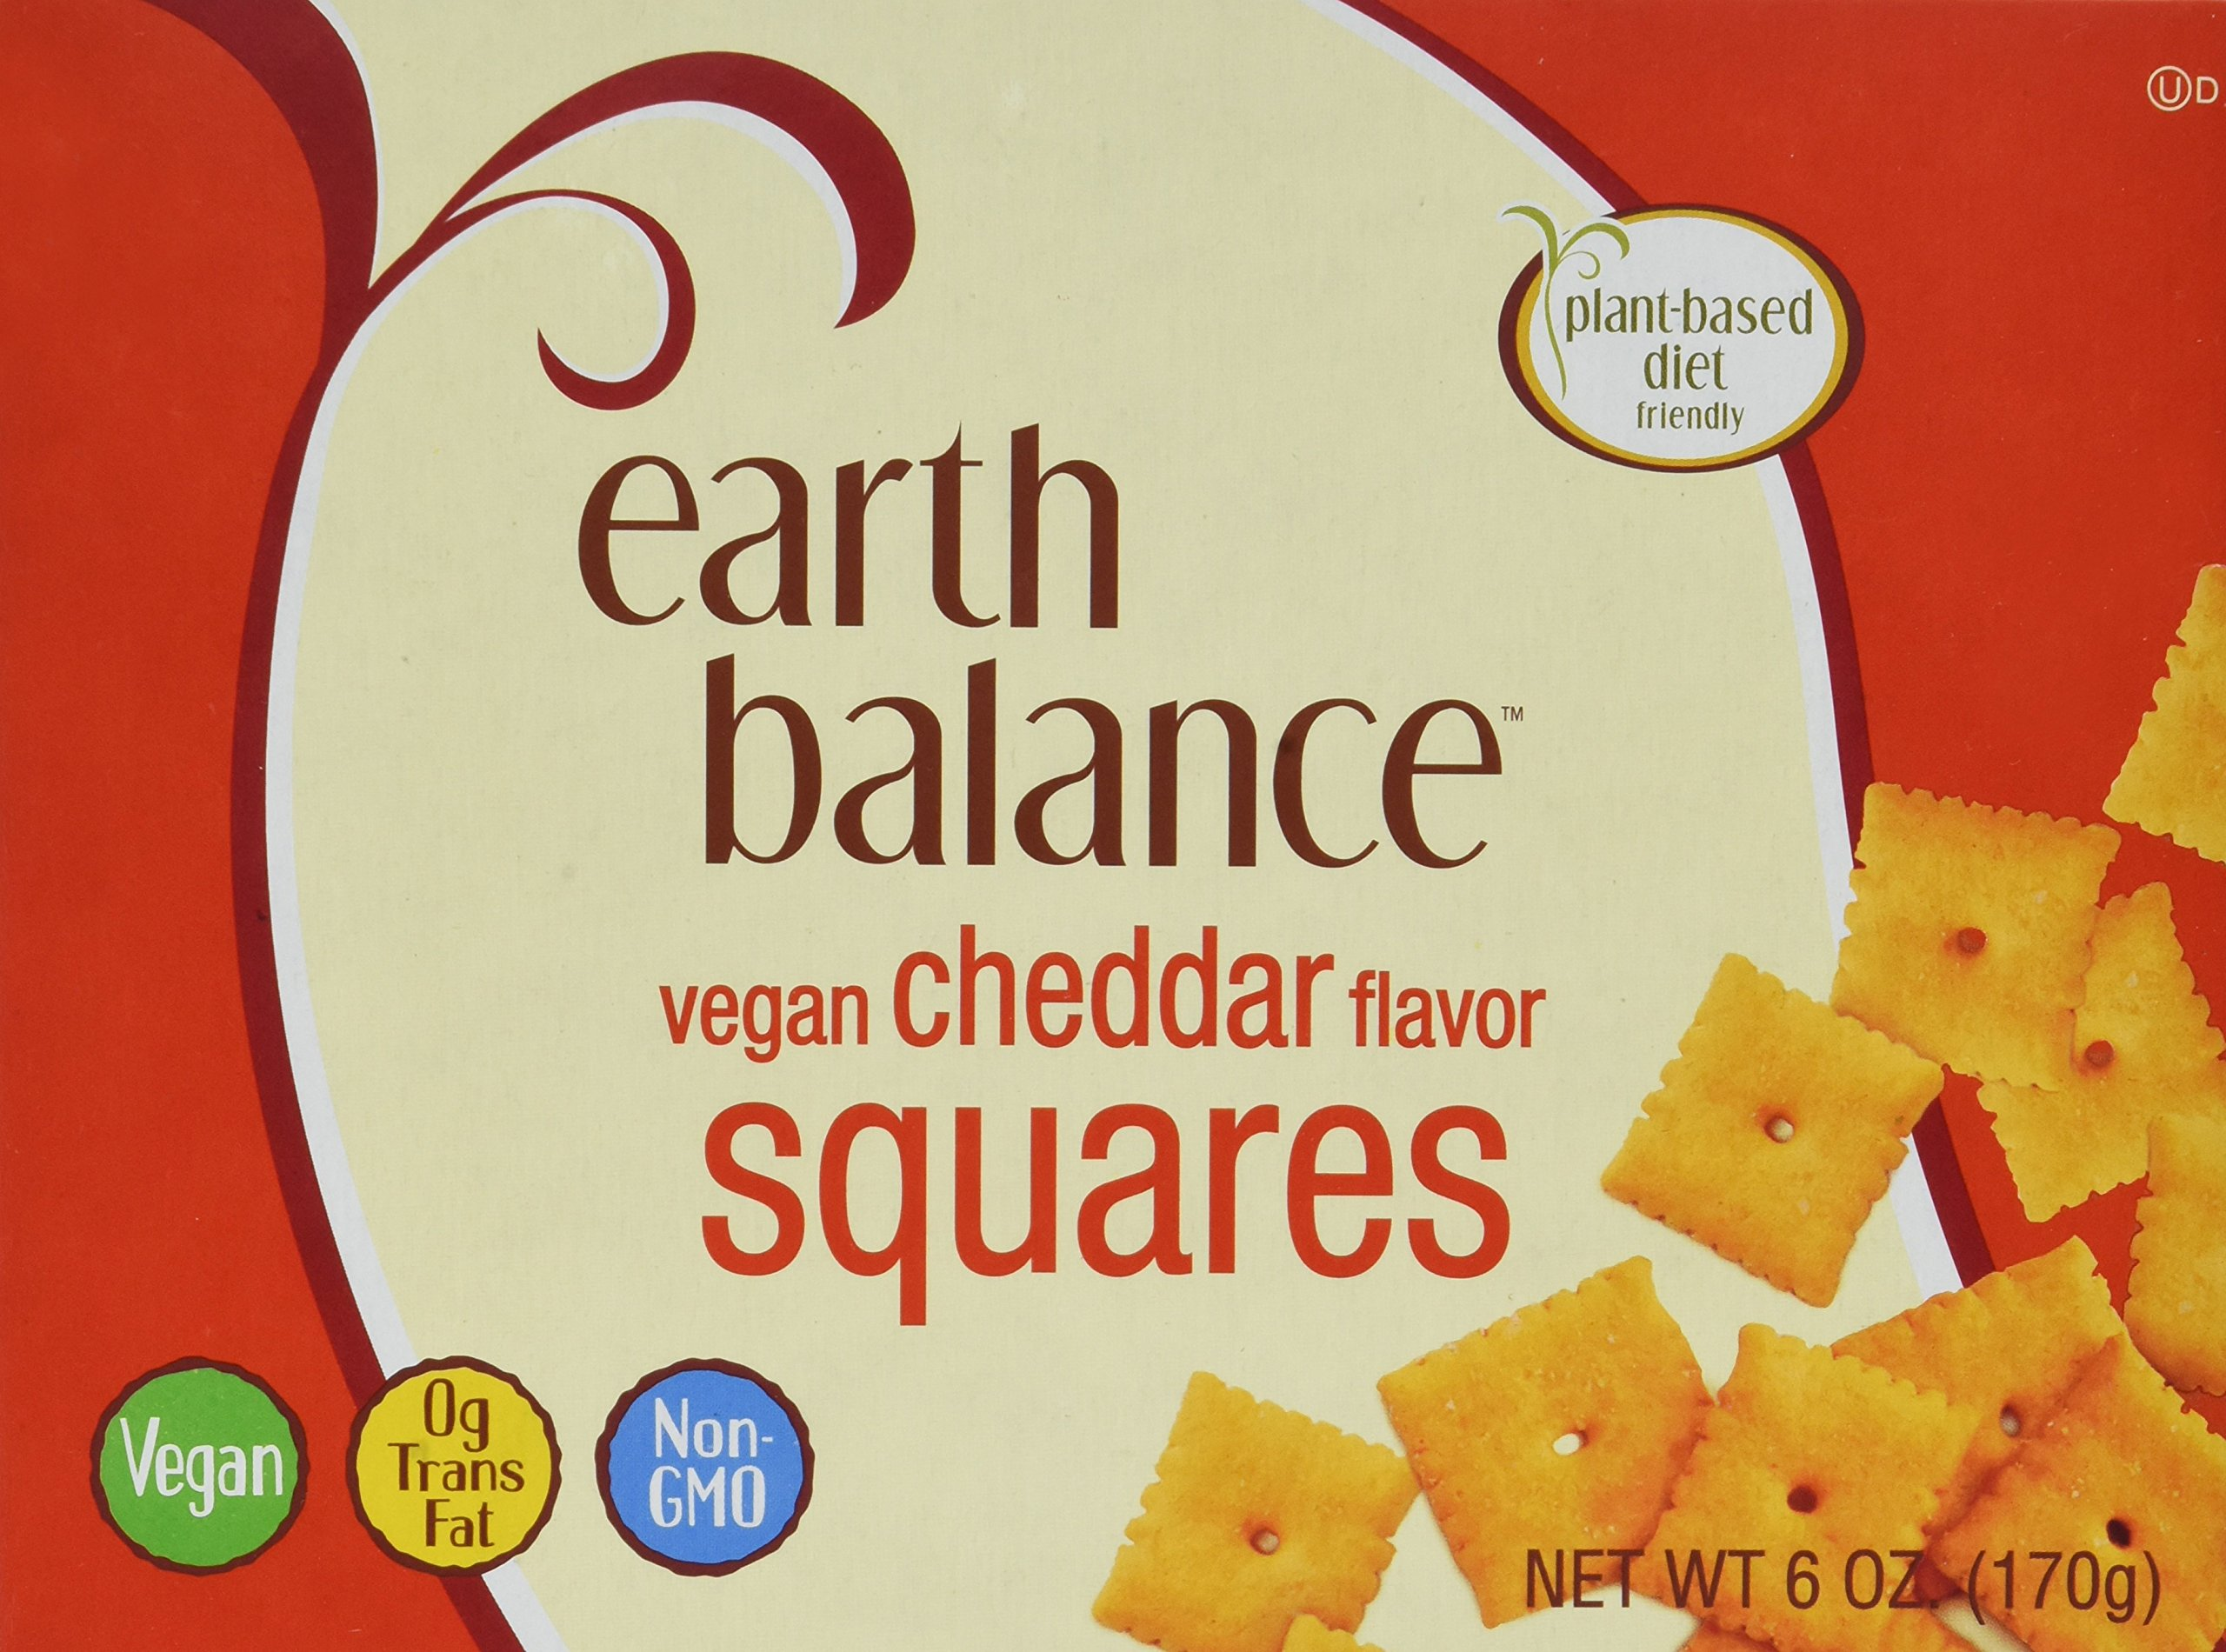 Earth Balance Vegan Cheddar Flavor Squares - 6 oz - 2 Pack by Earth Balance (Image #1)